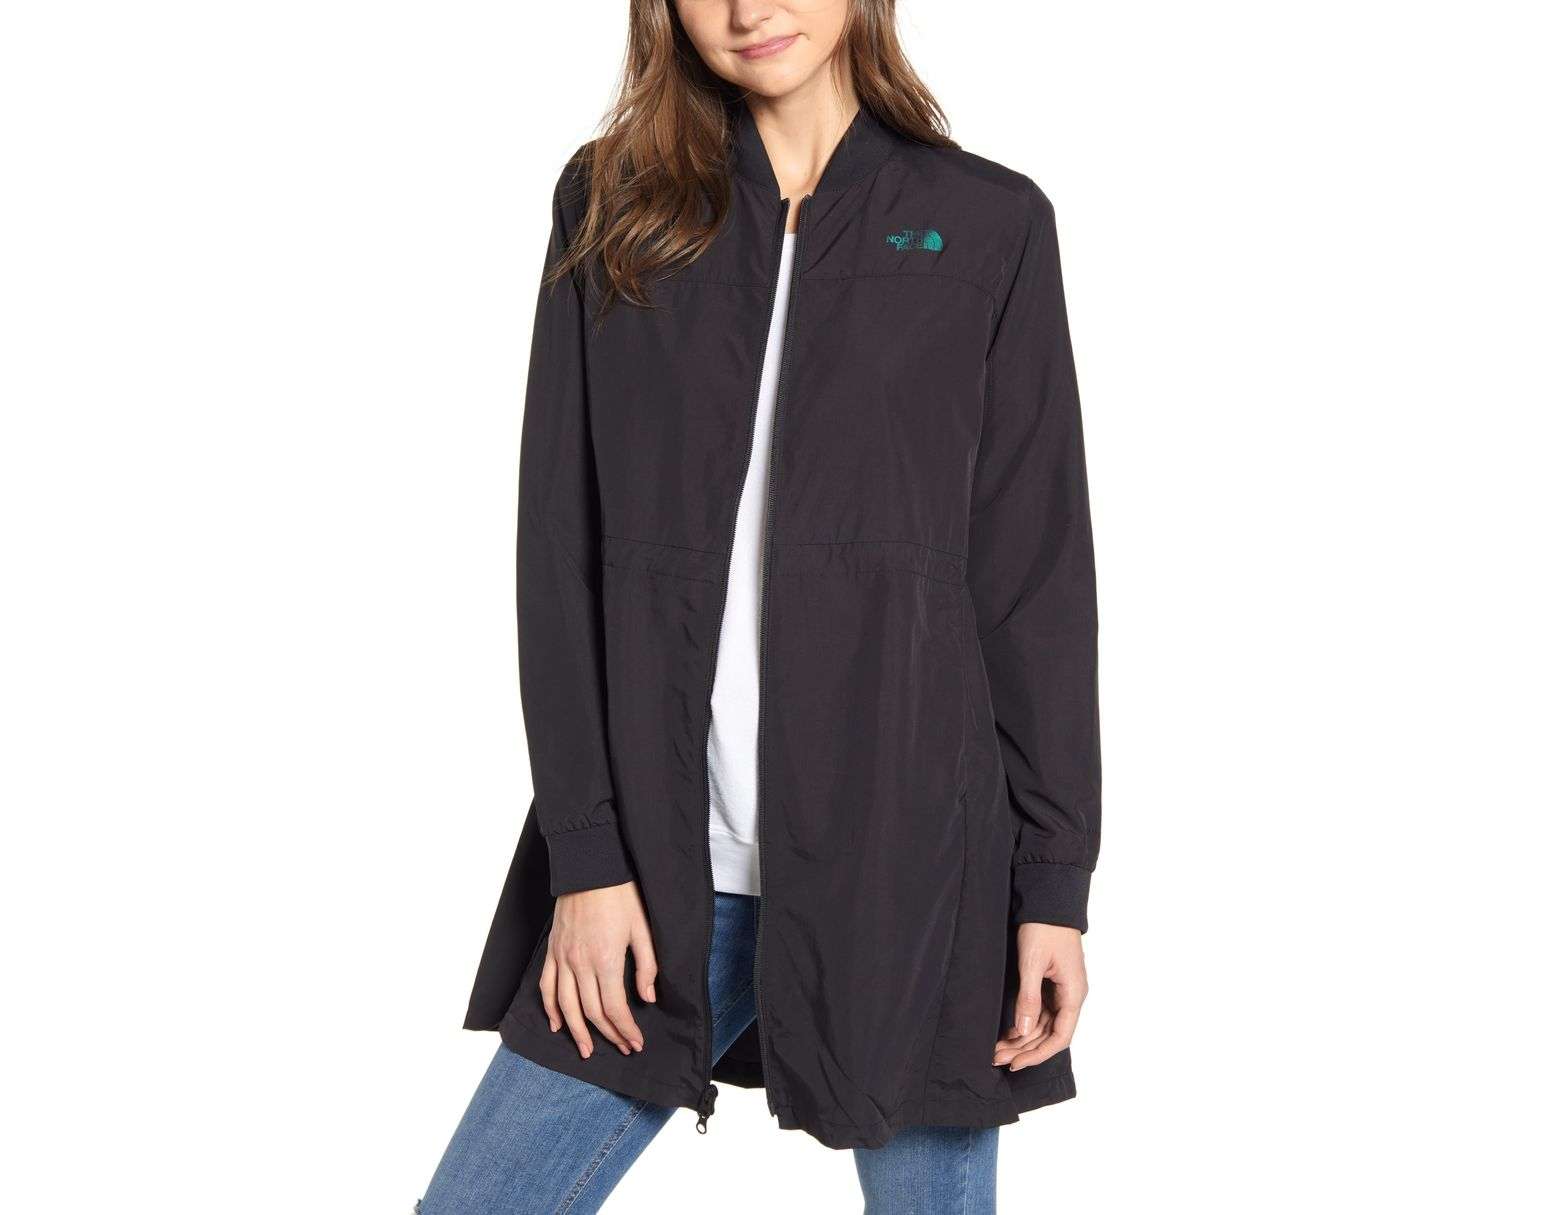 c27932fa7 Women's Flybae Water Resistant Bomber Jacket